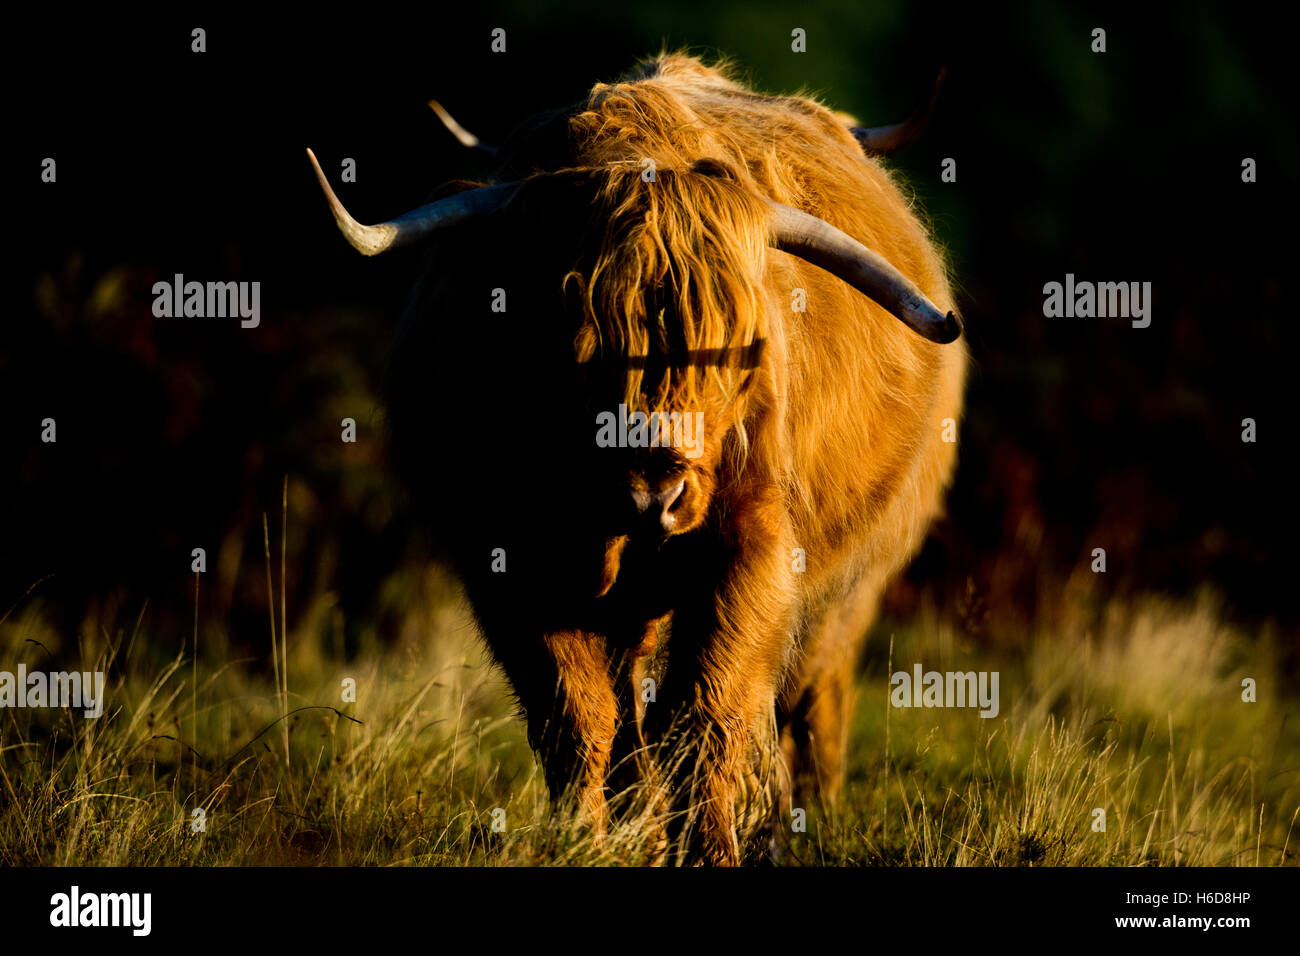 Highland cow in morning sunlight. - Stock Image